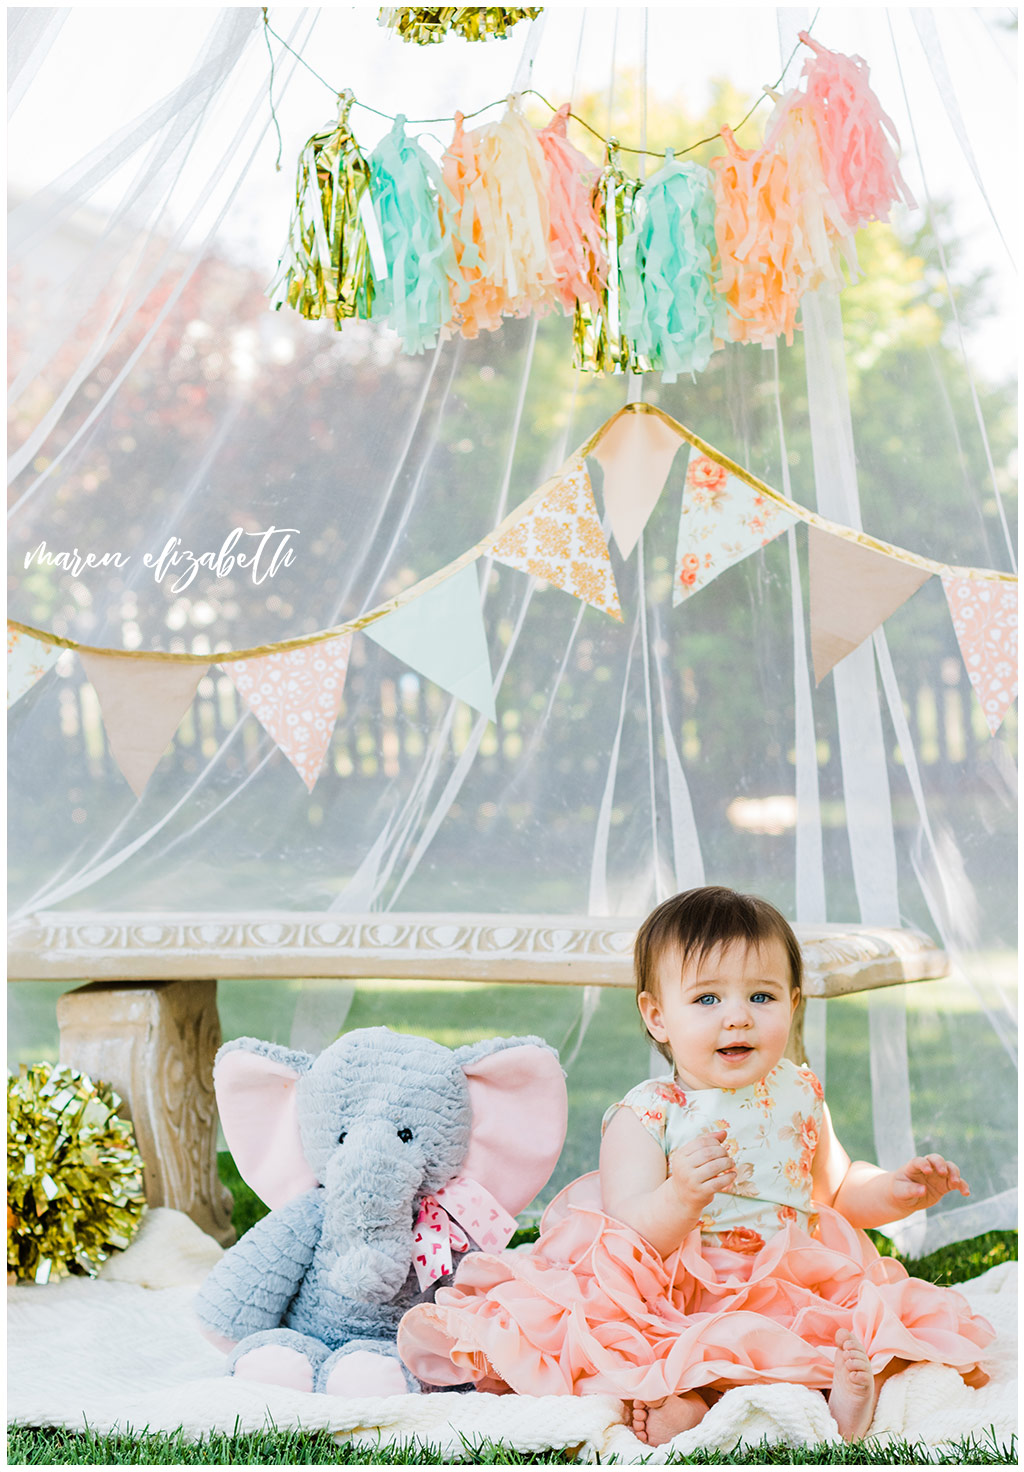 DIY Little Girl Cake Smash | Emi's one year old cake smash had a cute little girl theme. We got the decorations on the facebook marketplace and I made the cake myself. | Arizona Family Photographer | Maren Elizabeth Photography